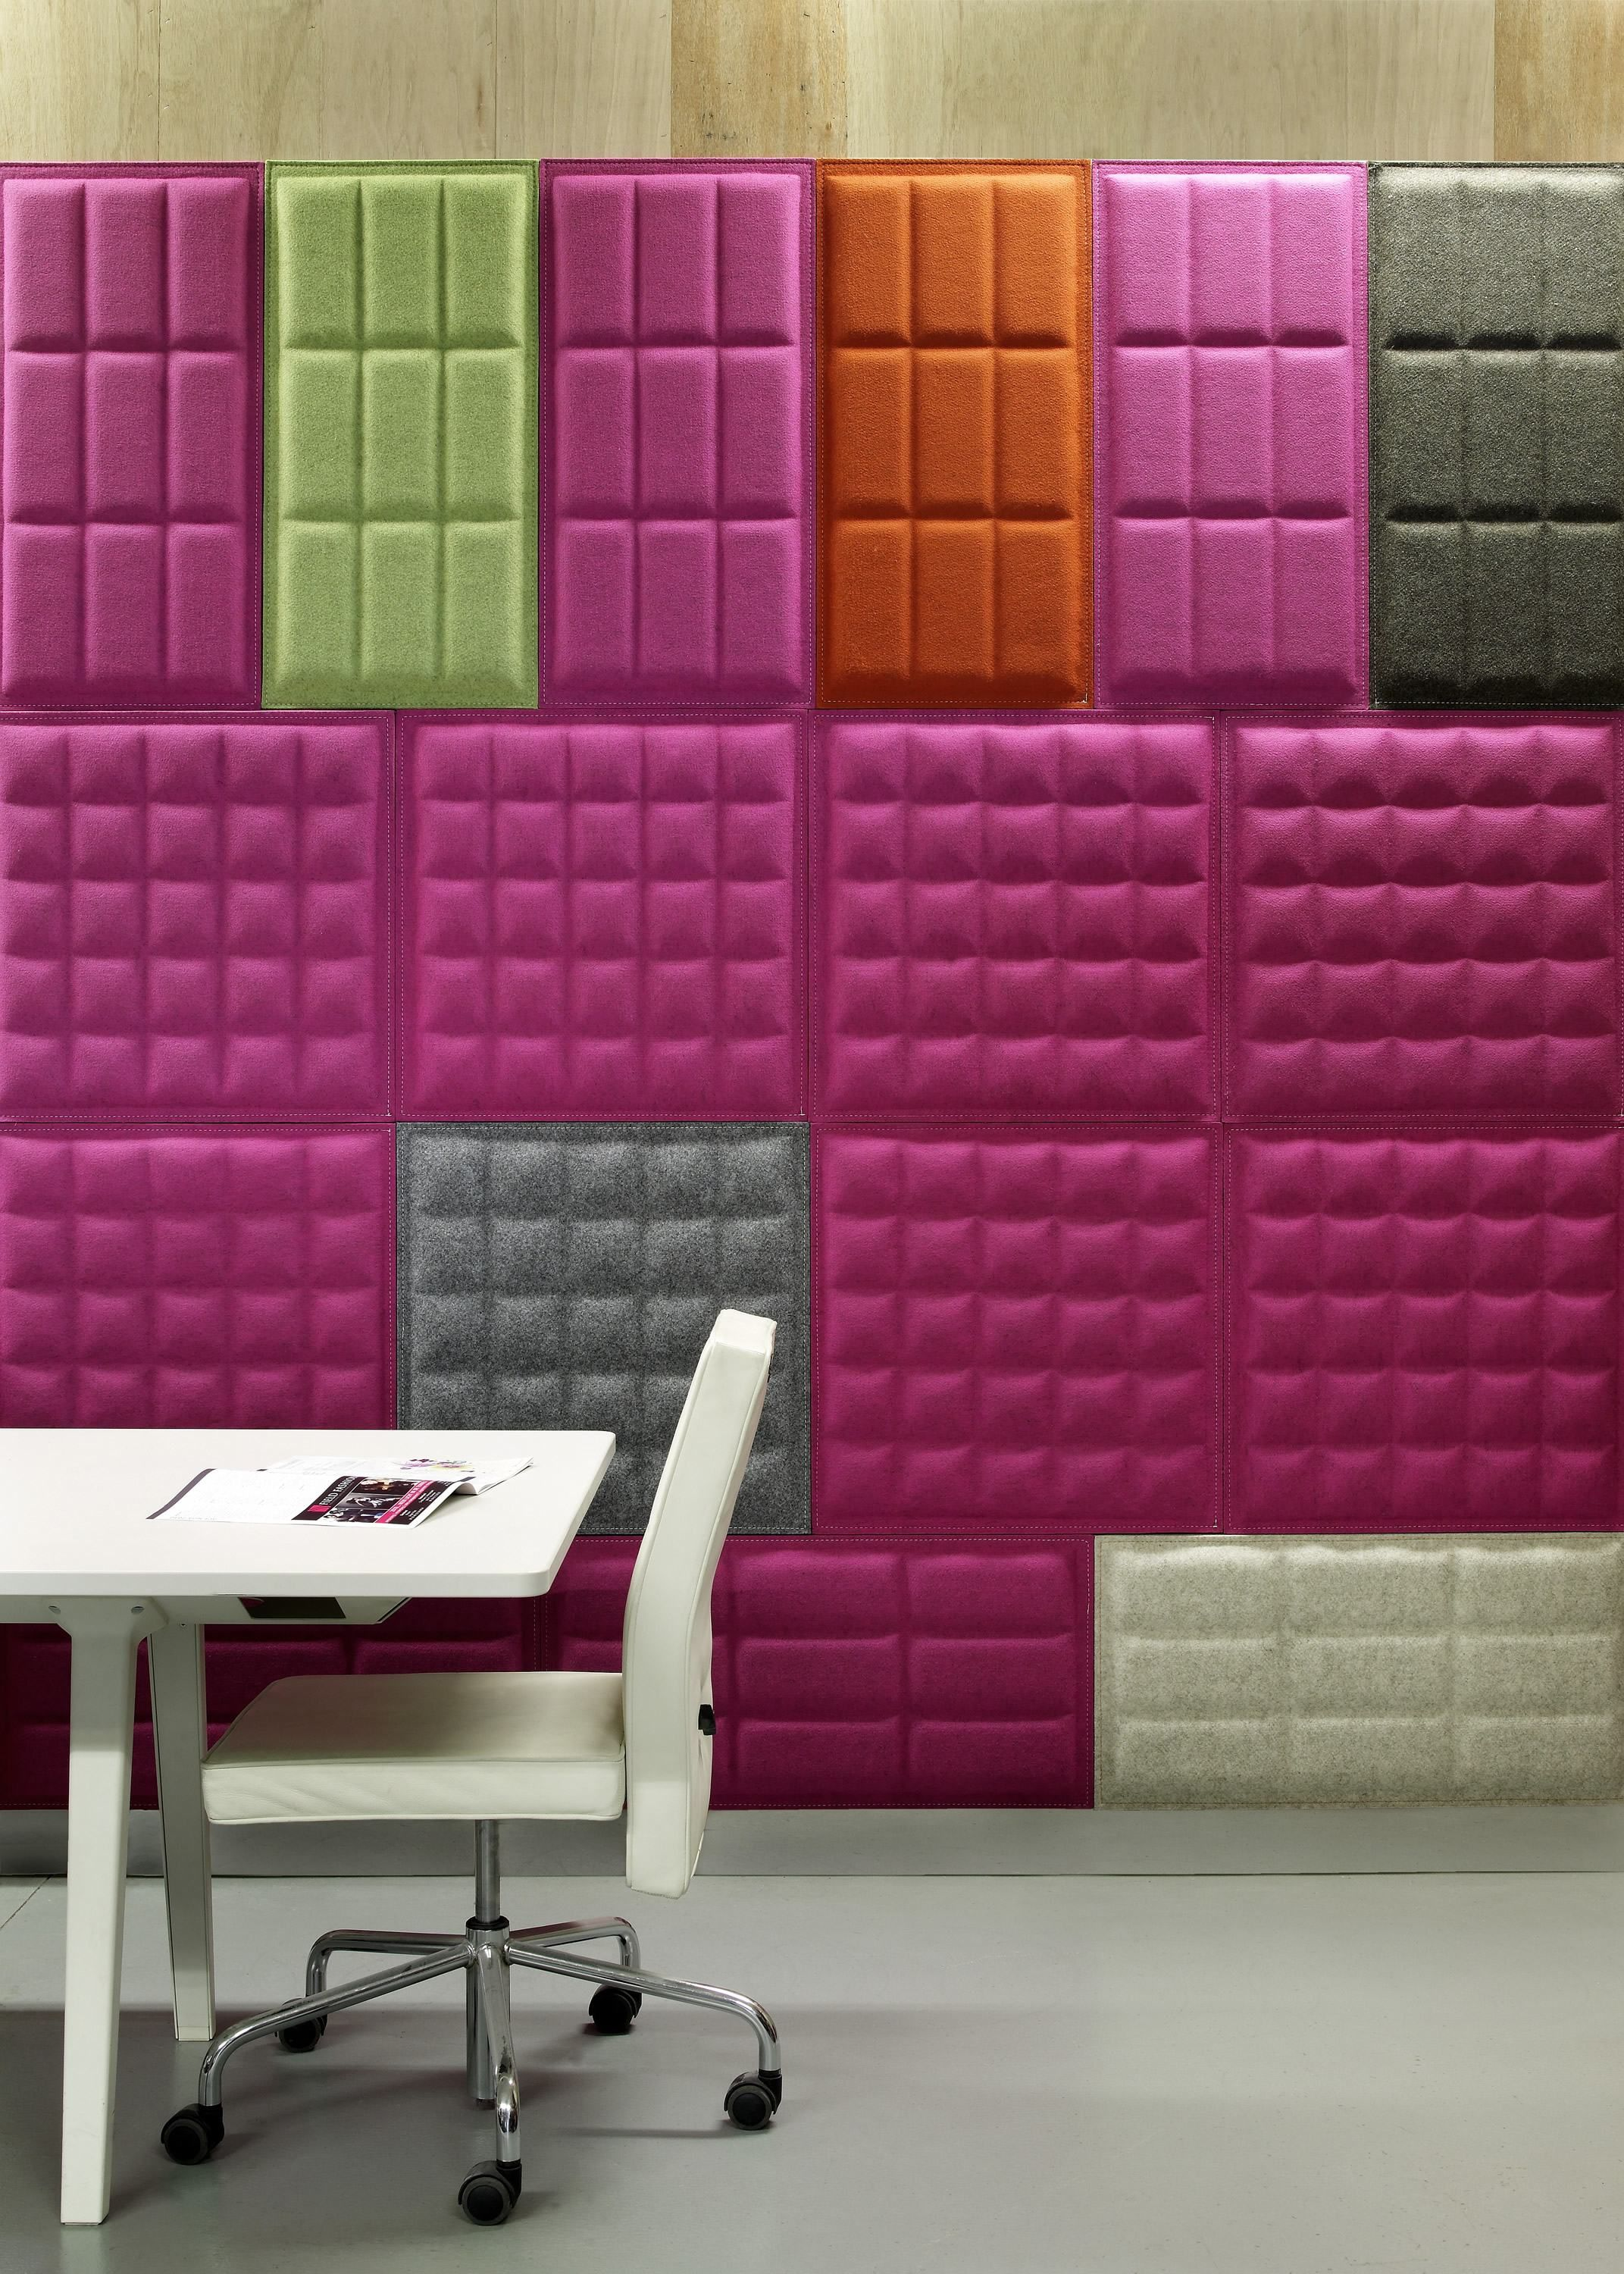 BuzziSkin 3D Tile Acoustical Wall Panel on Designer Pages